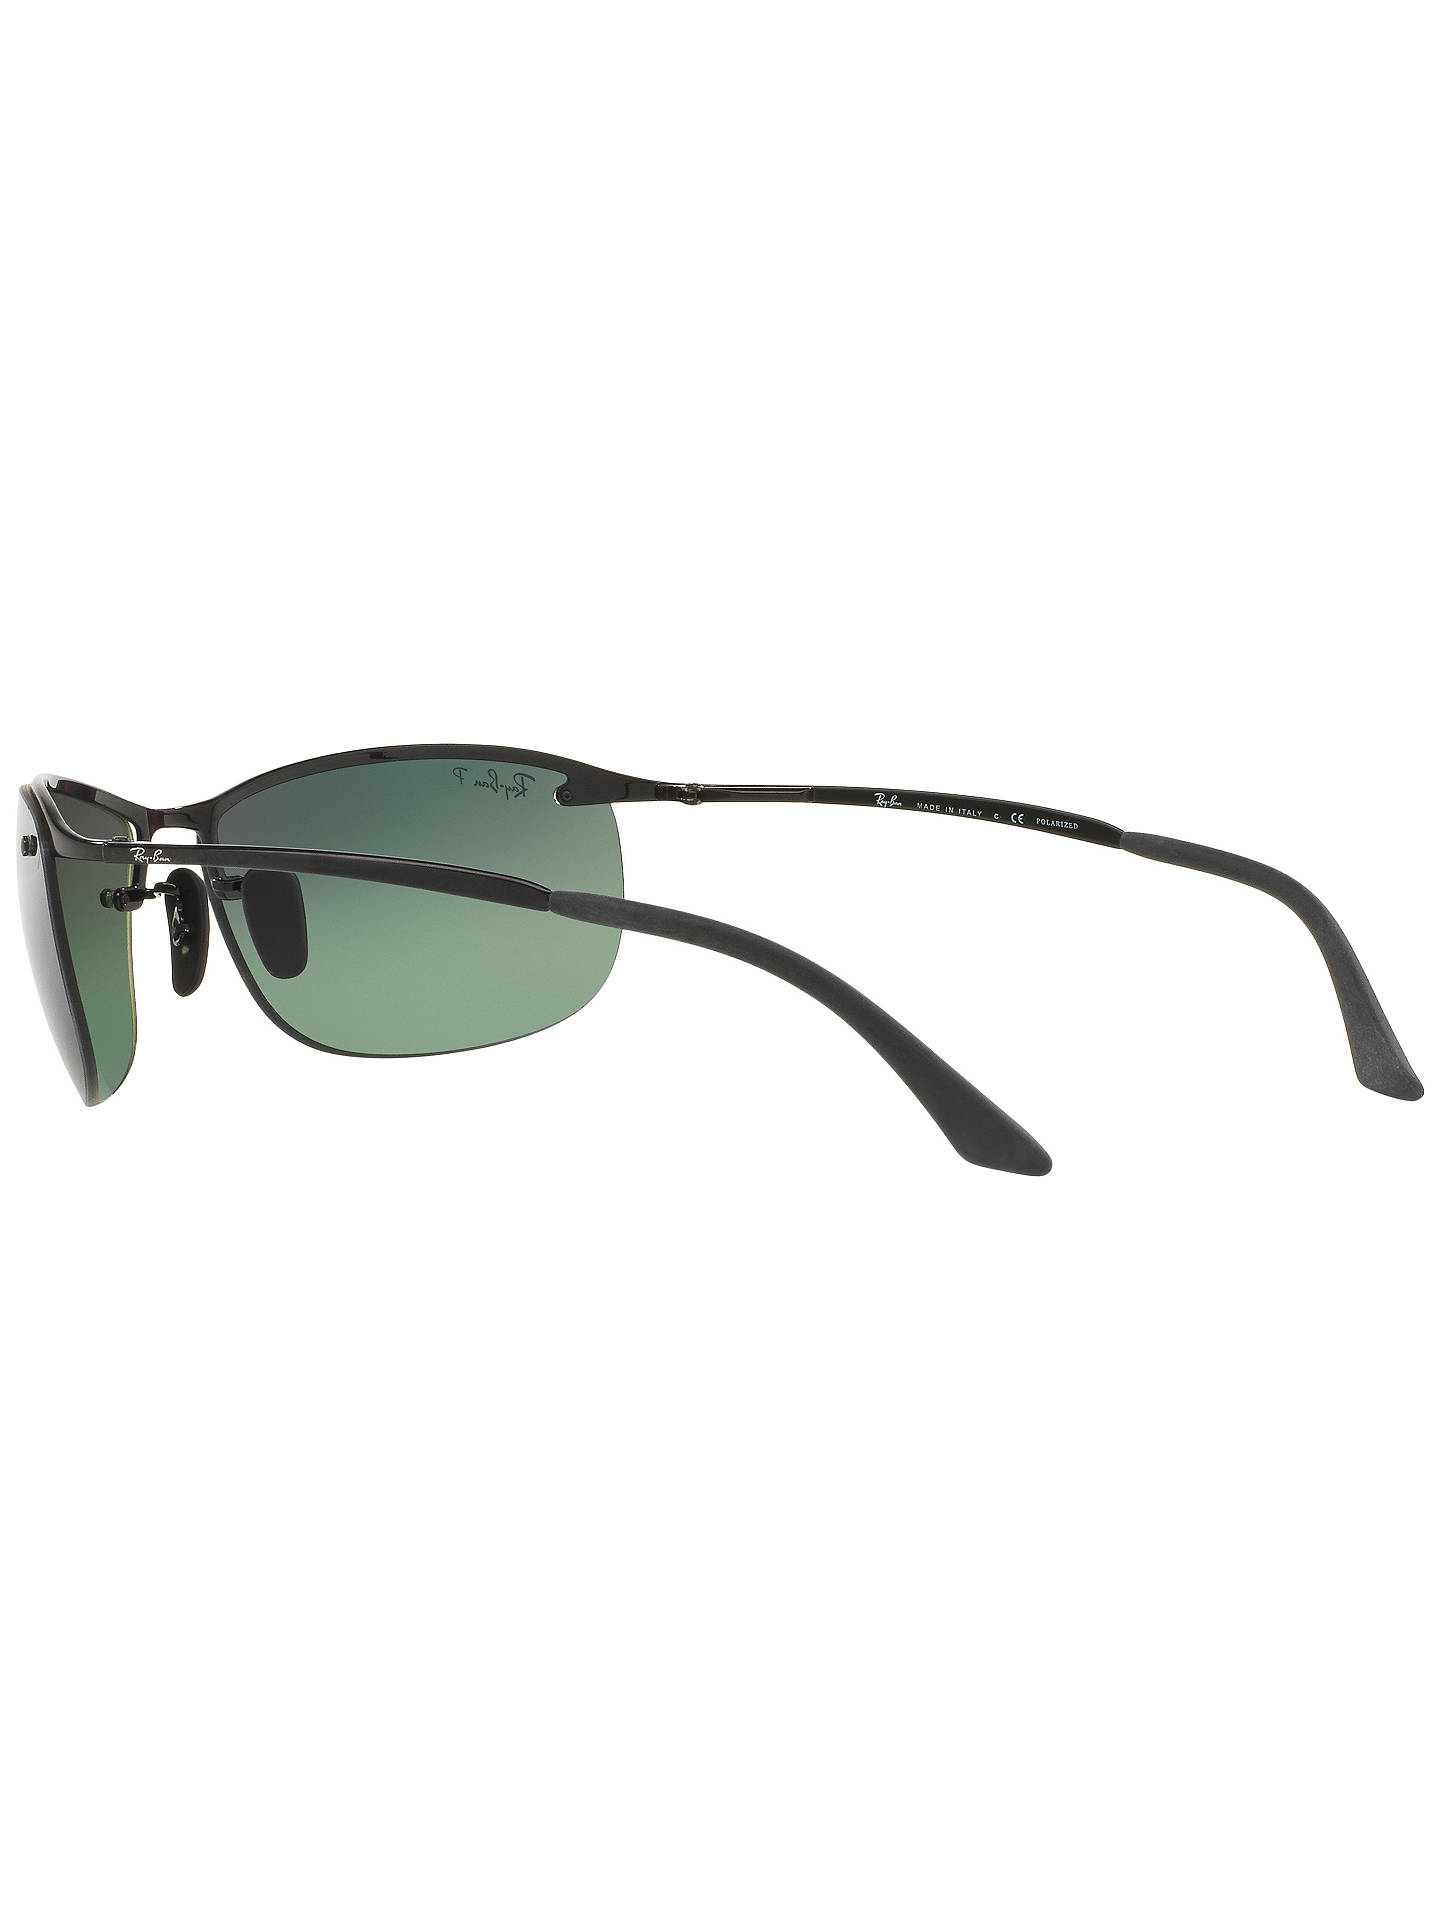 4a0d3f876e Ray-Ban RB3542 Polarised Chromance Rectangular Sunglasses at John ...